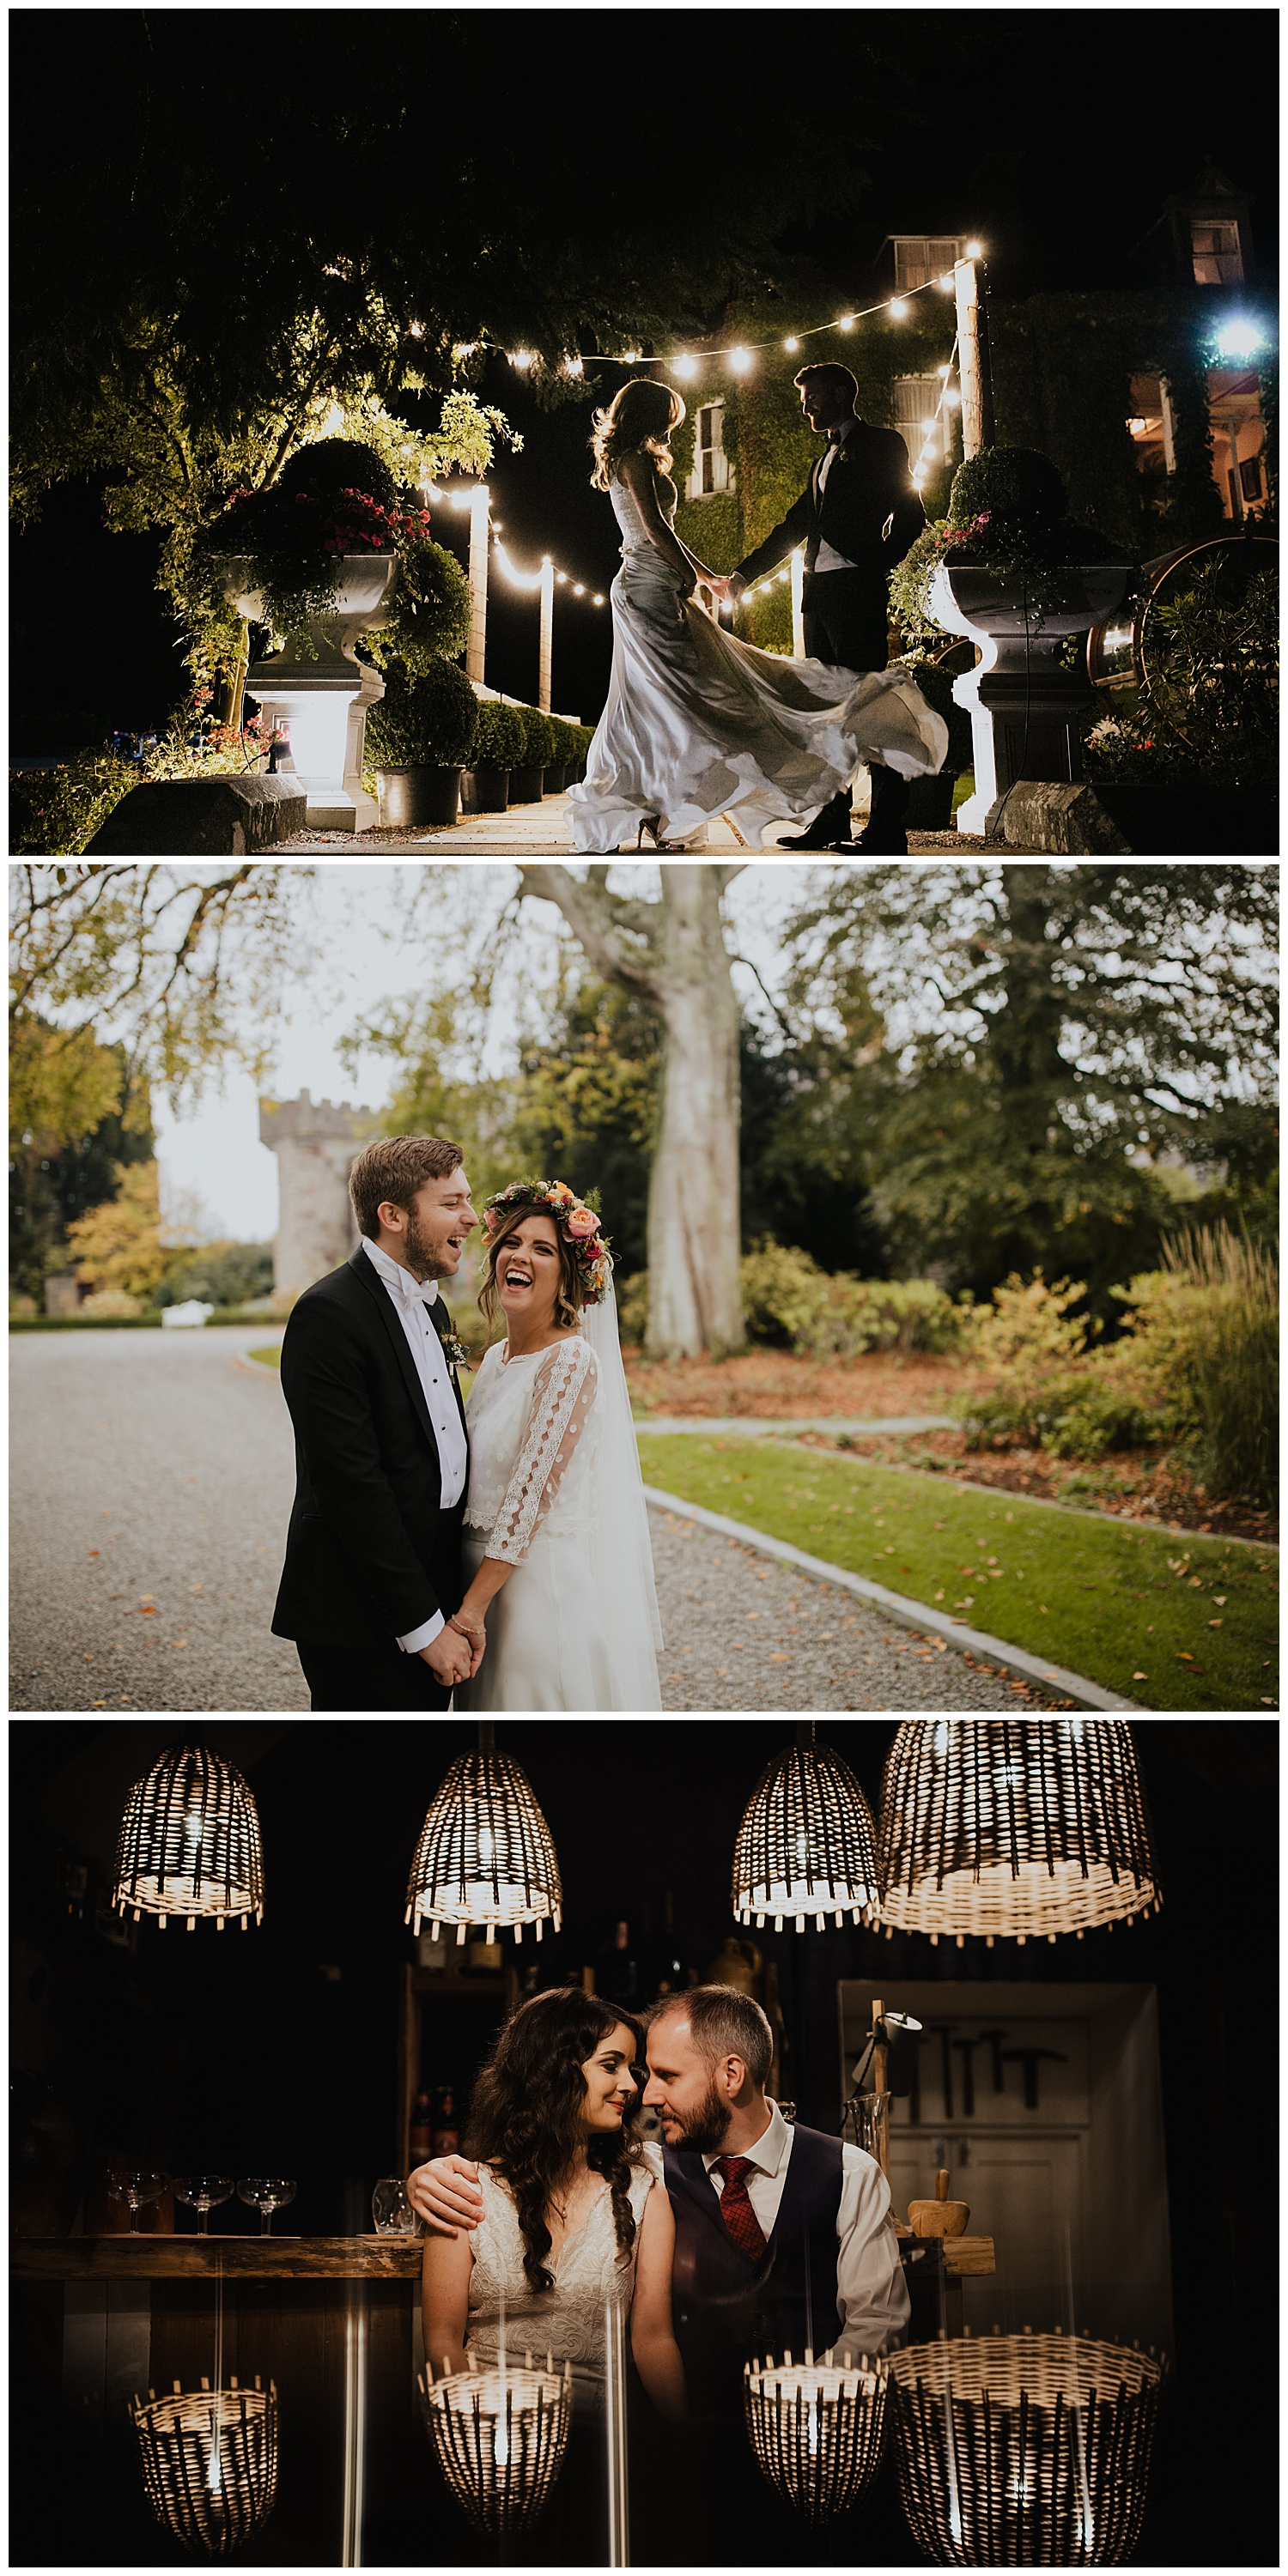 a&c_tinakilly_black_tie_wedding_photographer_livia_figueiredo_261.jpg